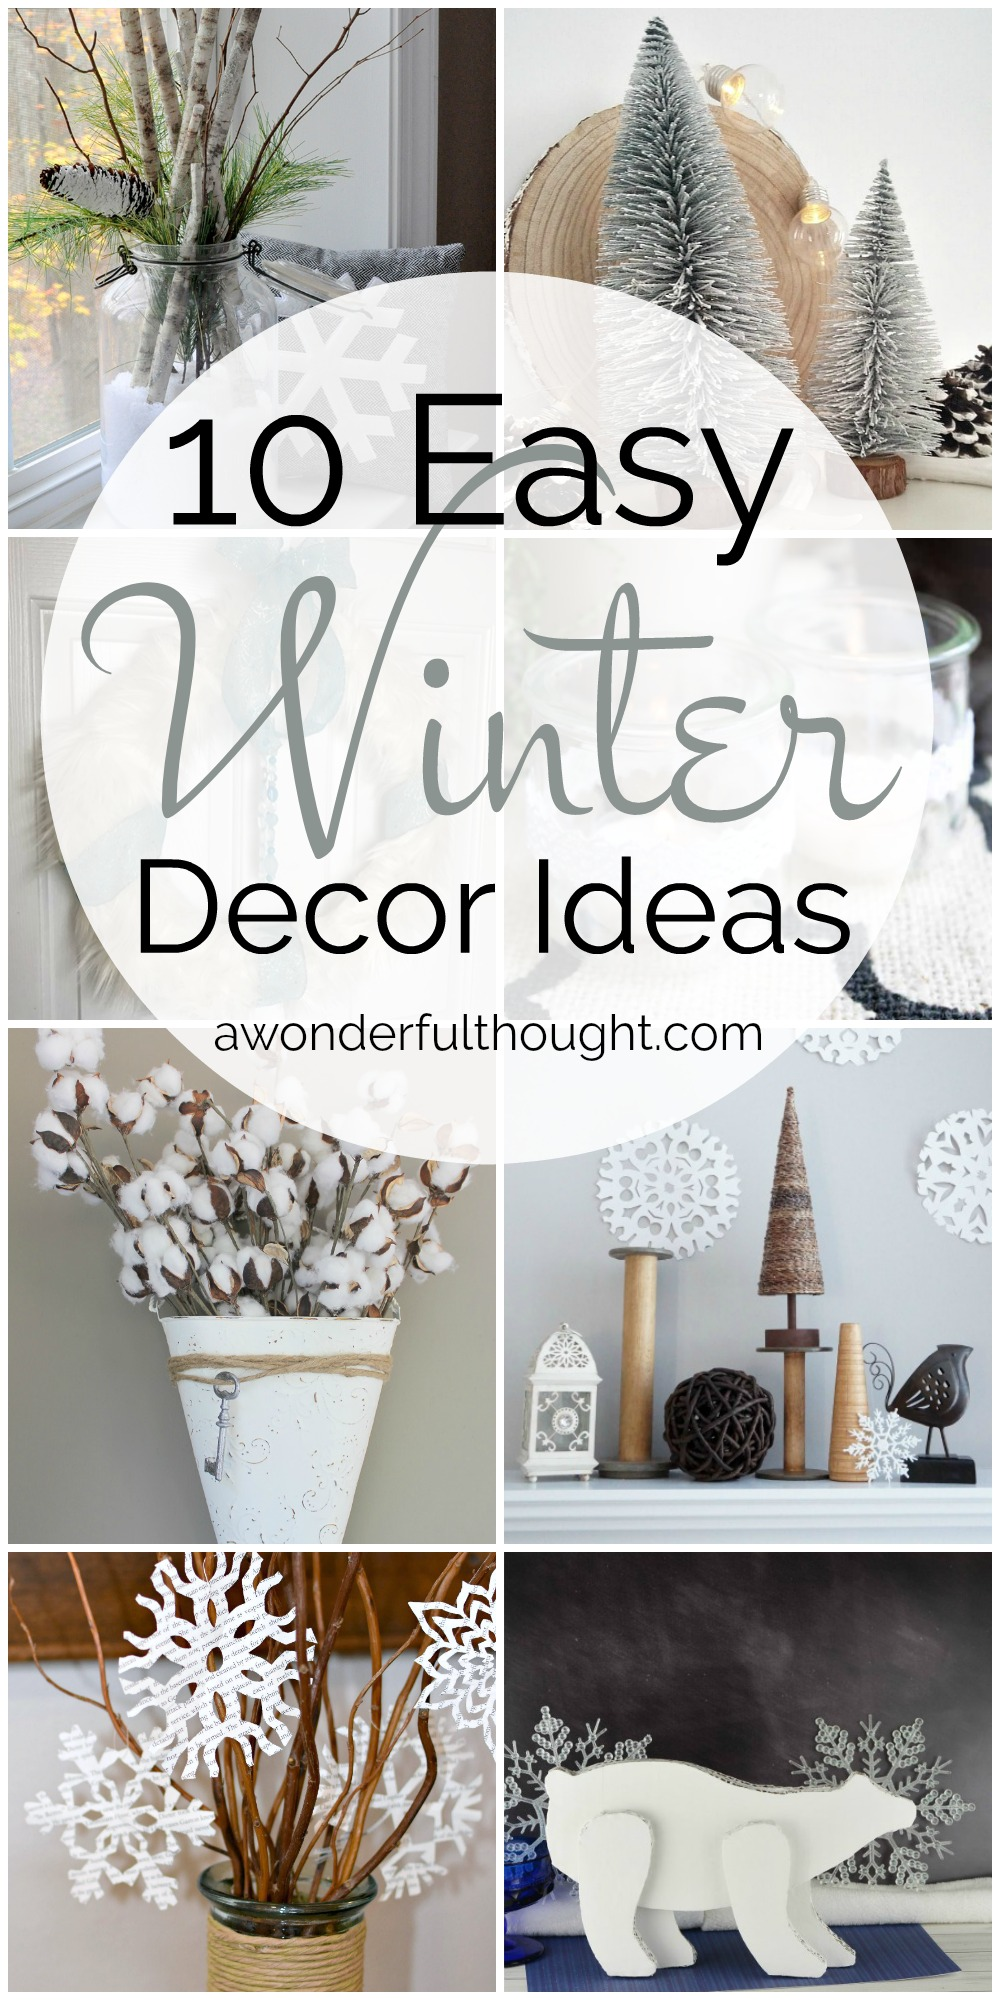 10 Easy Winter Decor Ideas | MM #186 - A Wonderful Thought